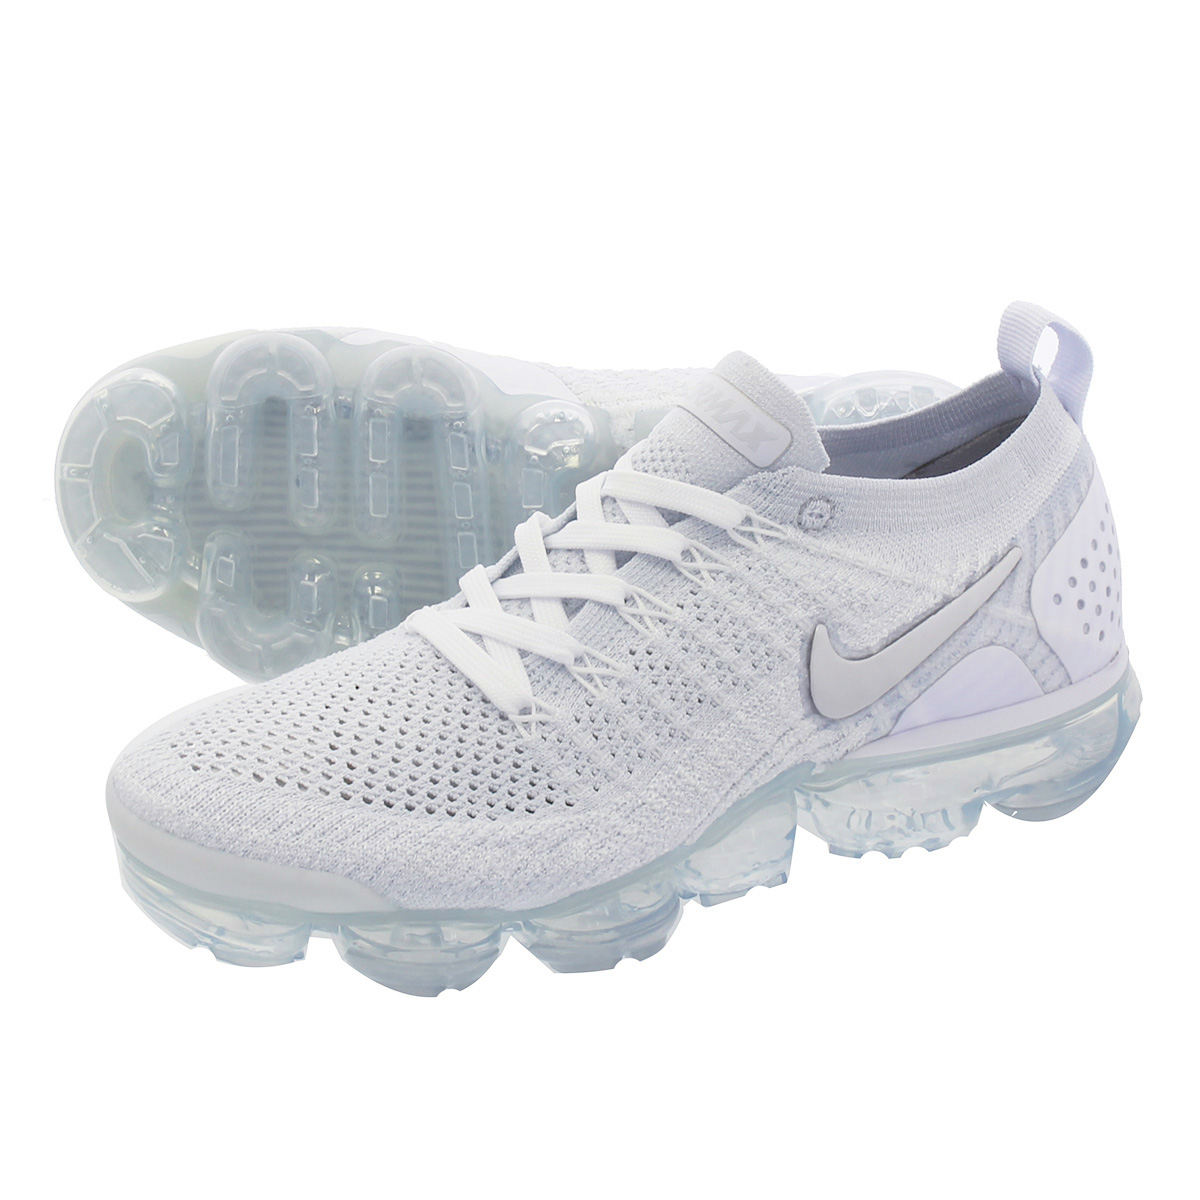 60da2722df38f NIKE WMNS AIR VAPORMAX FLYKNIT 2 Nike women vapor max fried food knit WHITE VAST  GREY FOOTBALL GREY 942